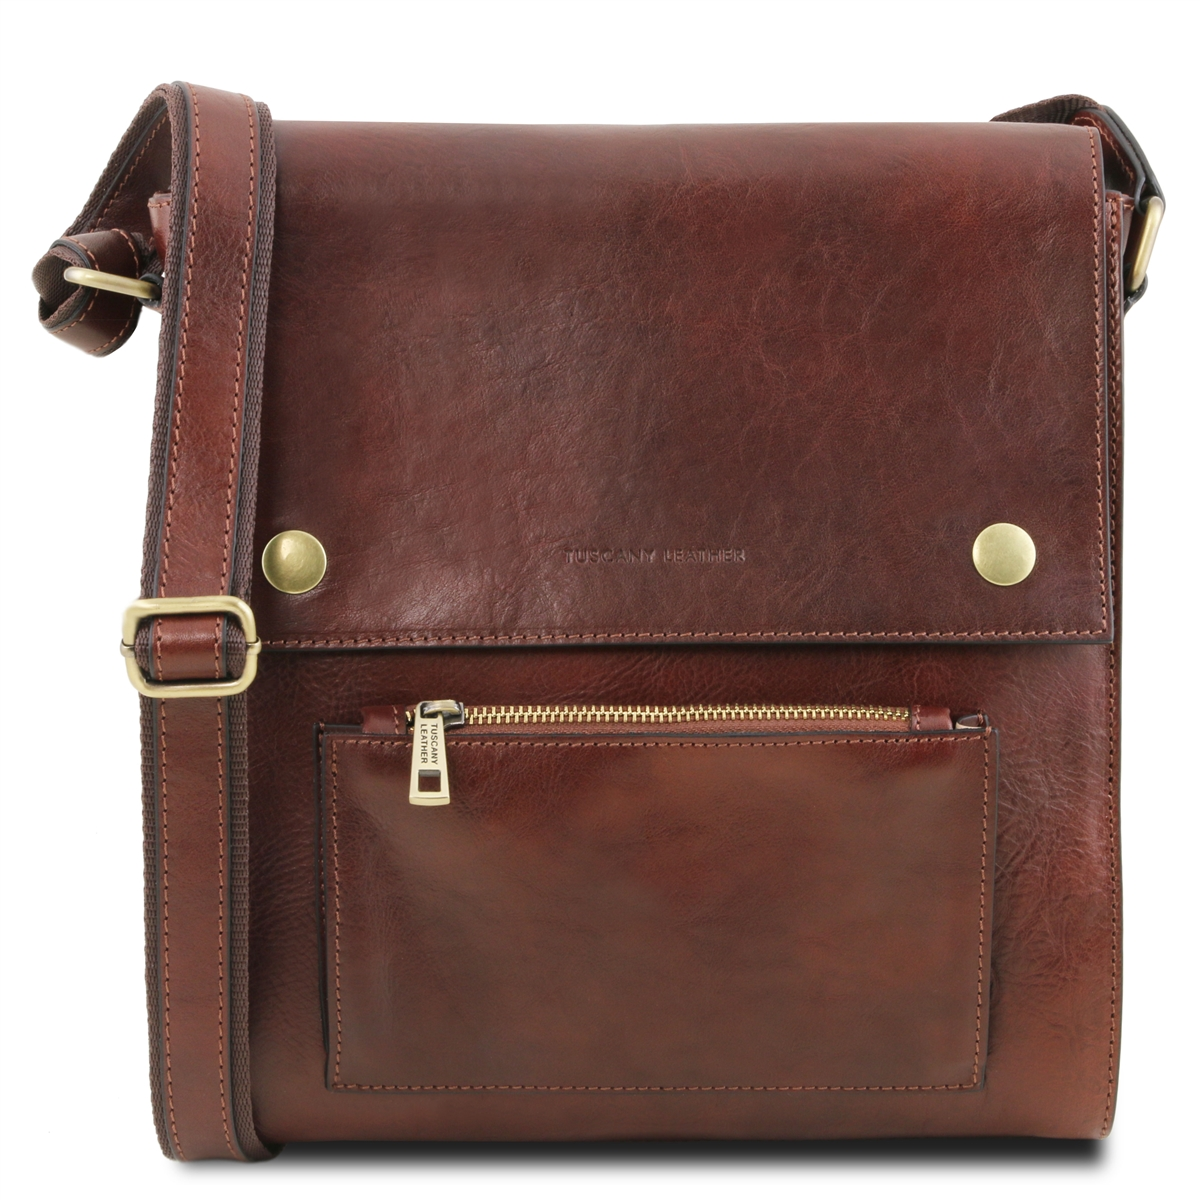 Tuscany Leather TL141656 Oliver Men s Crossbody Bag 5a594665a974a